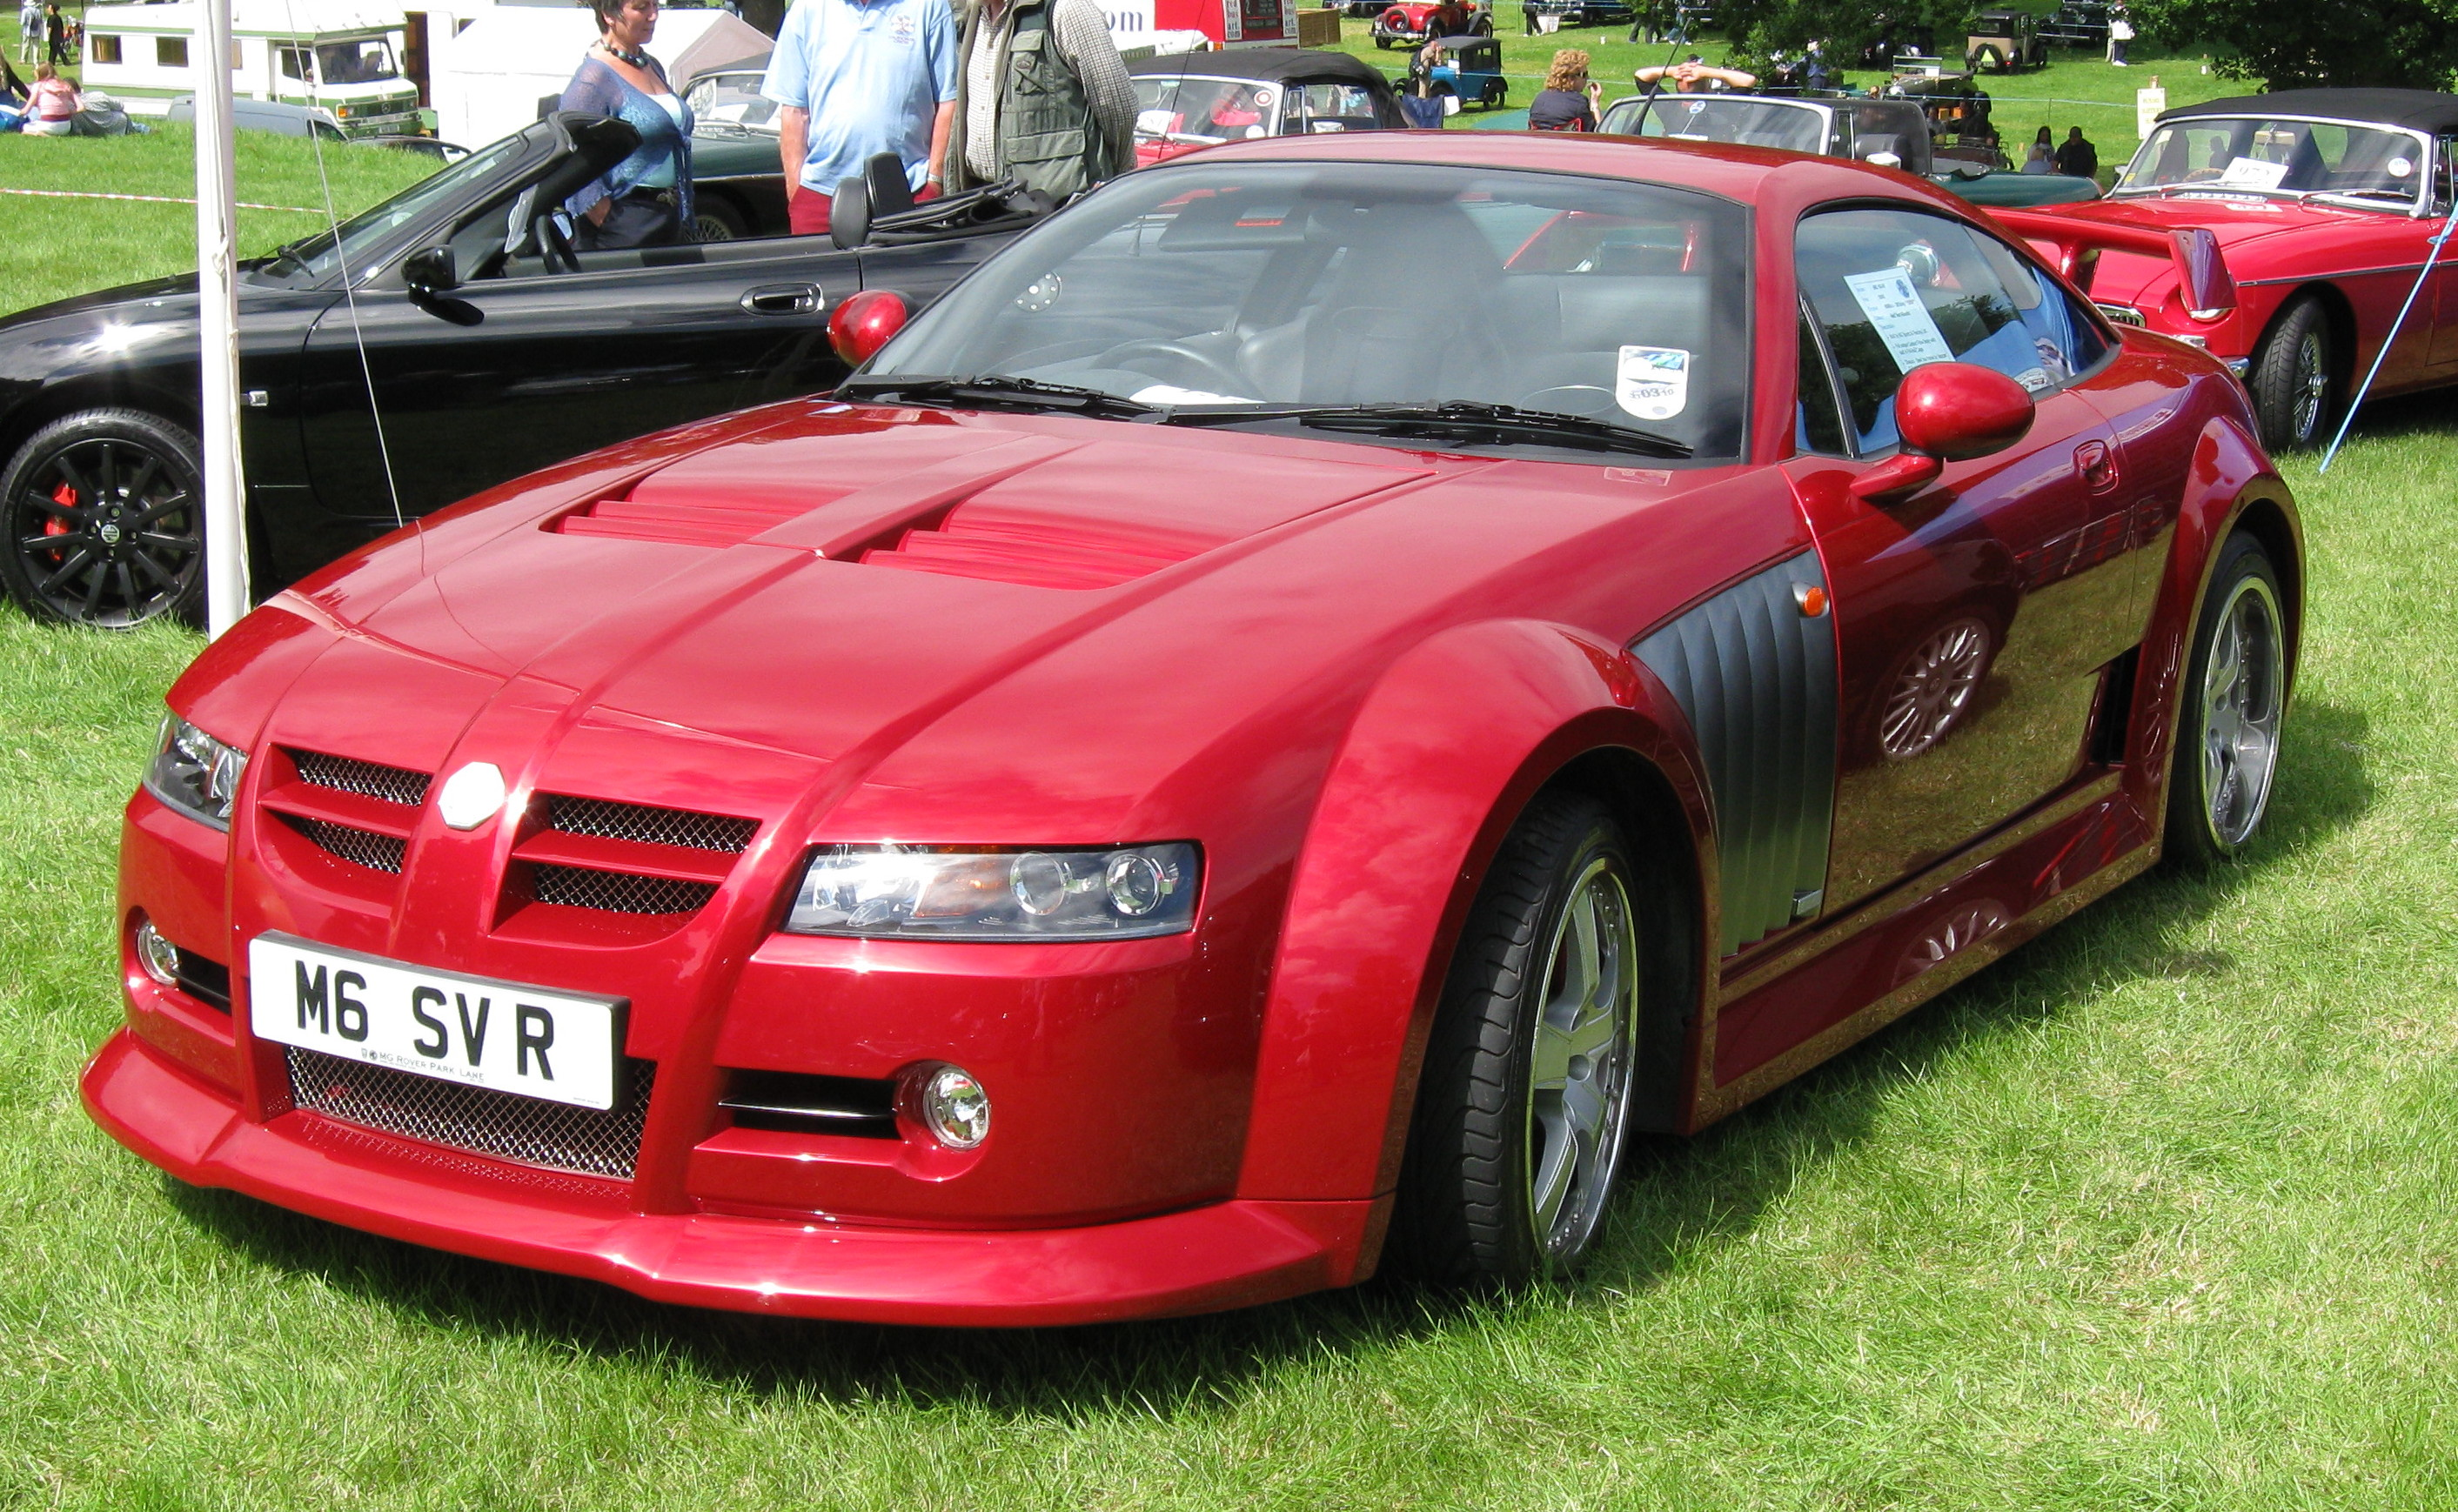 File:MG XPower SV-R.jpg - Wikimedia Commons